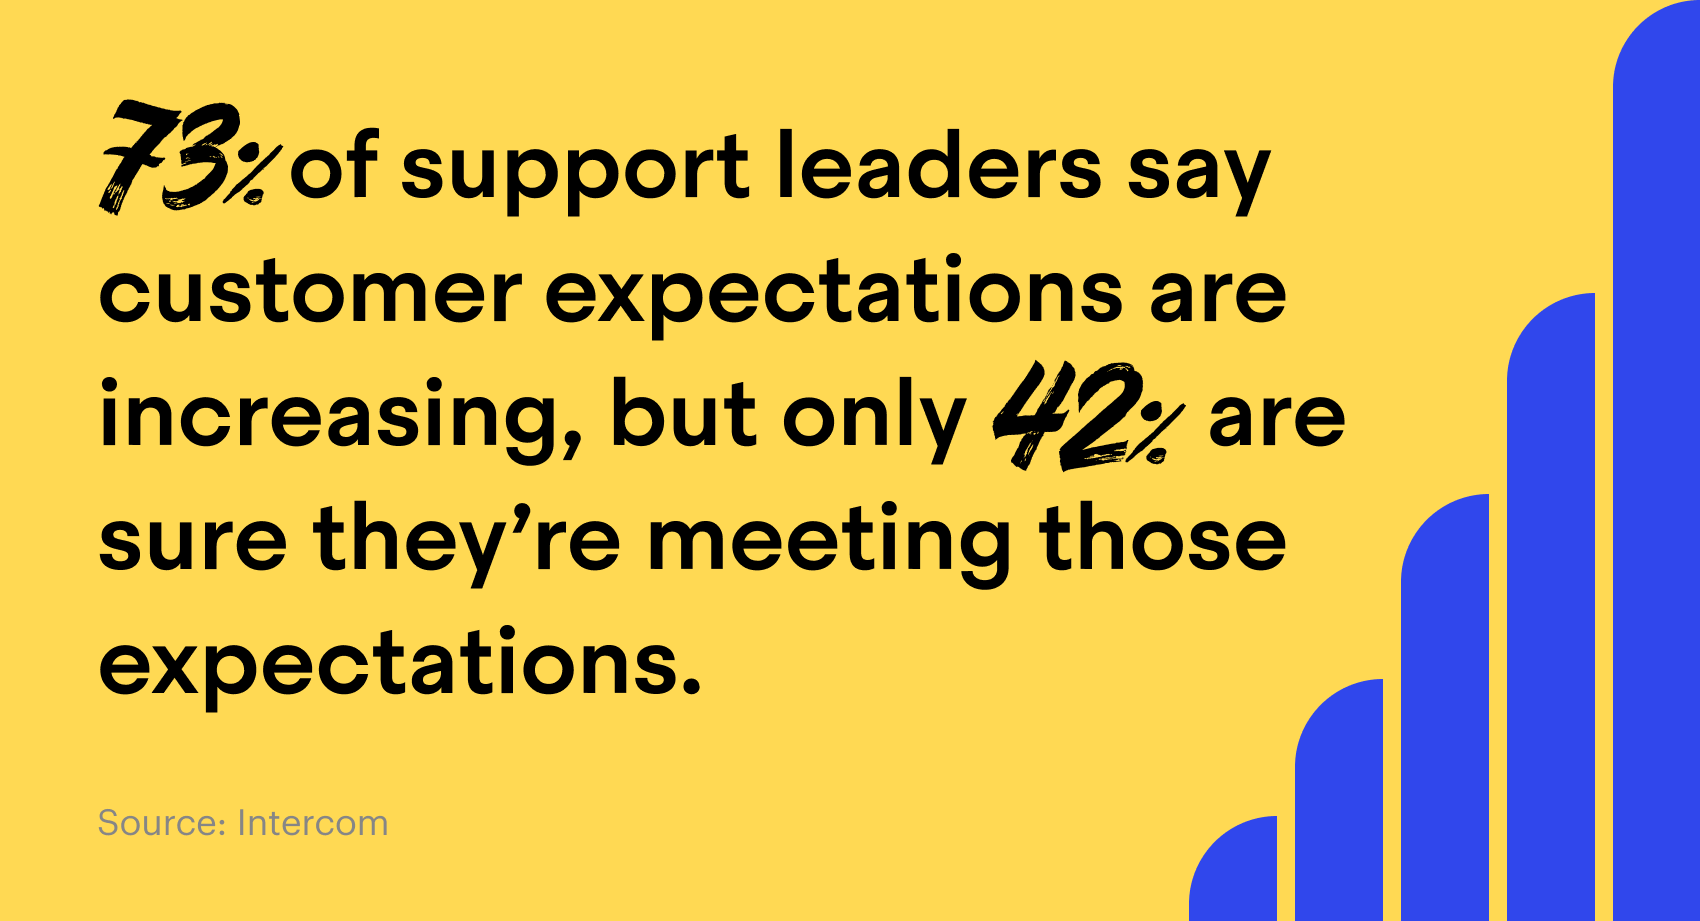 73% said customer expectations are increasing, but only 42% were sure they're meeting those expectations.